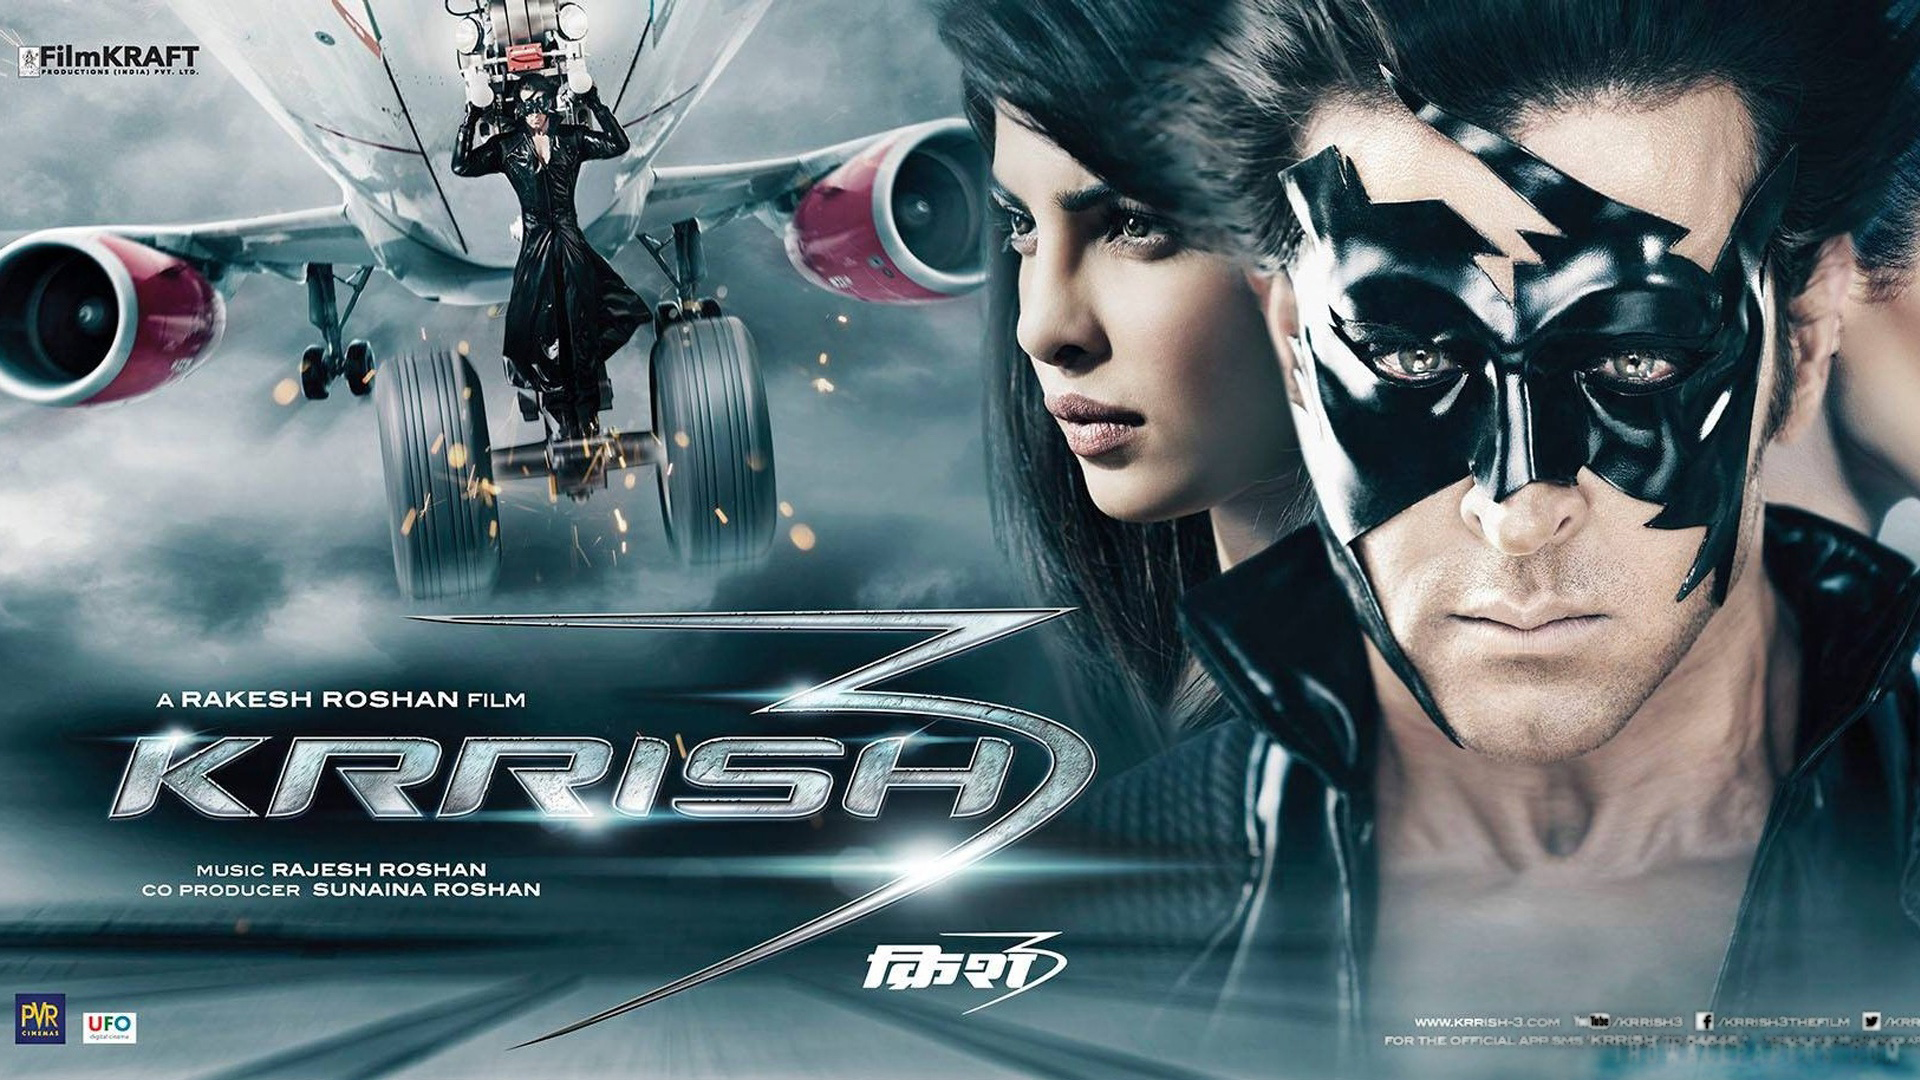 best 44+ krrish 3 wallpaper on hipwallpaper | krrish 3 wallpaper